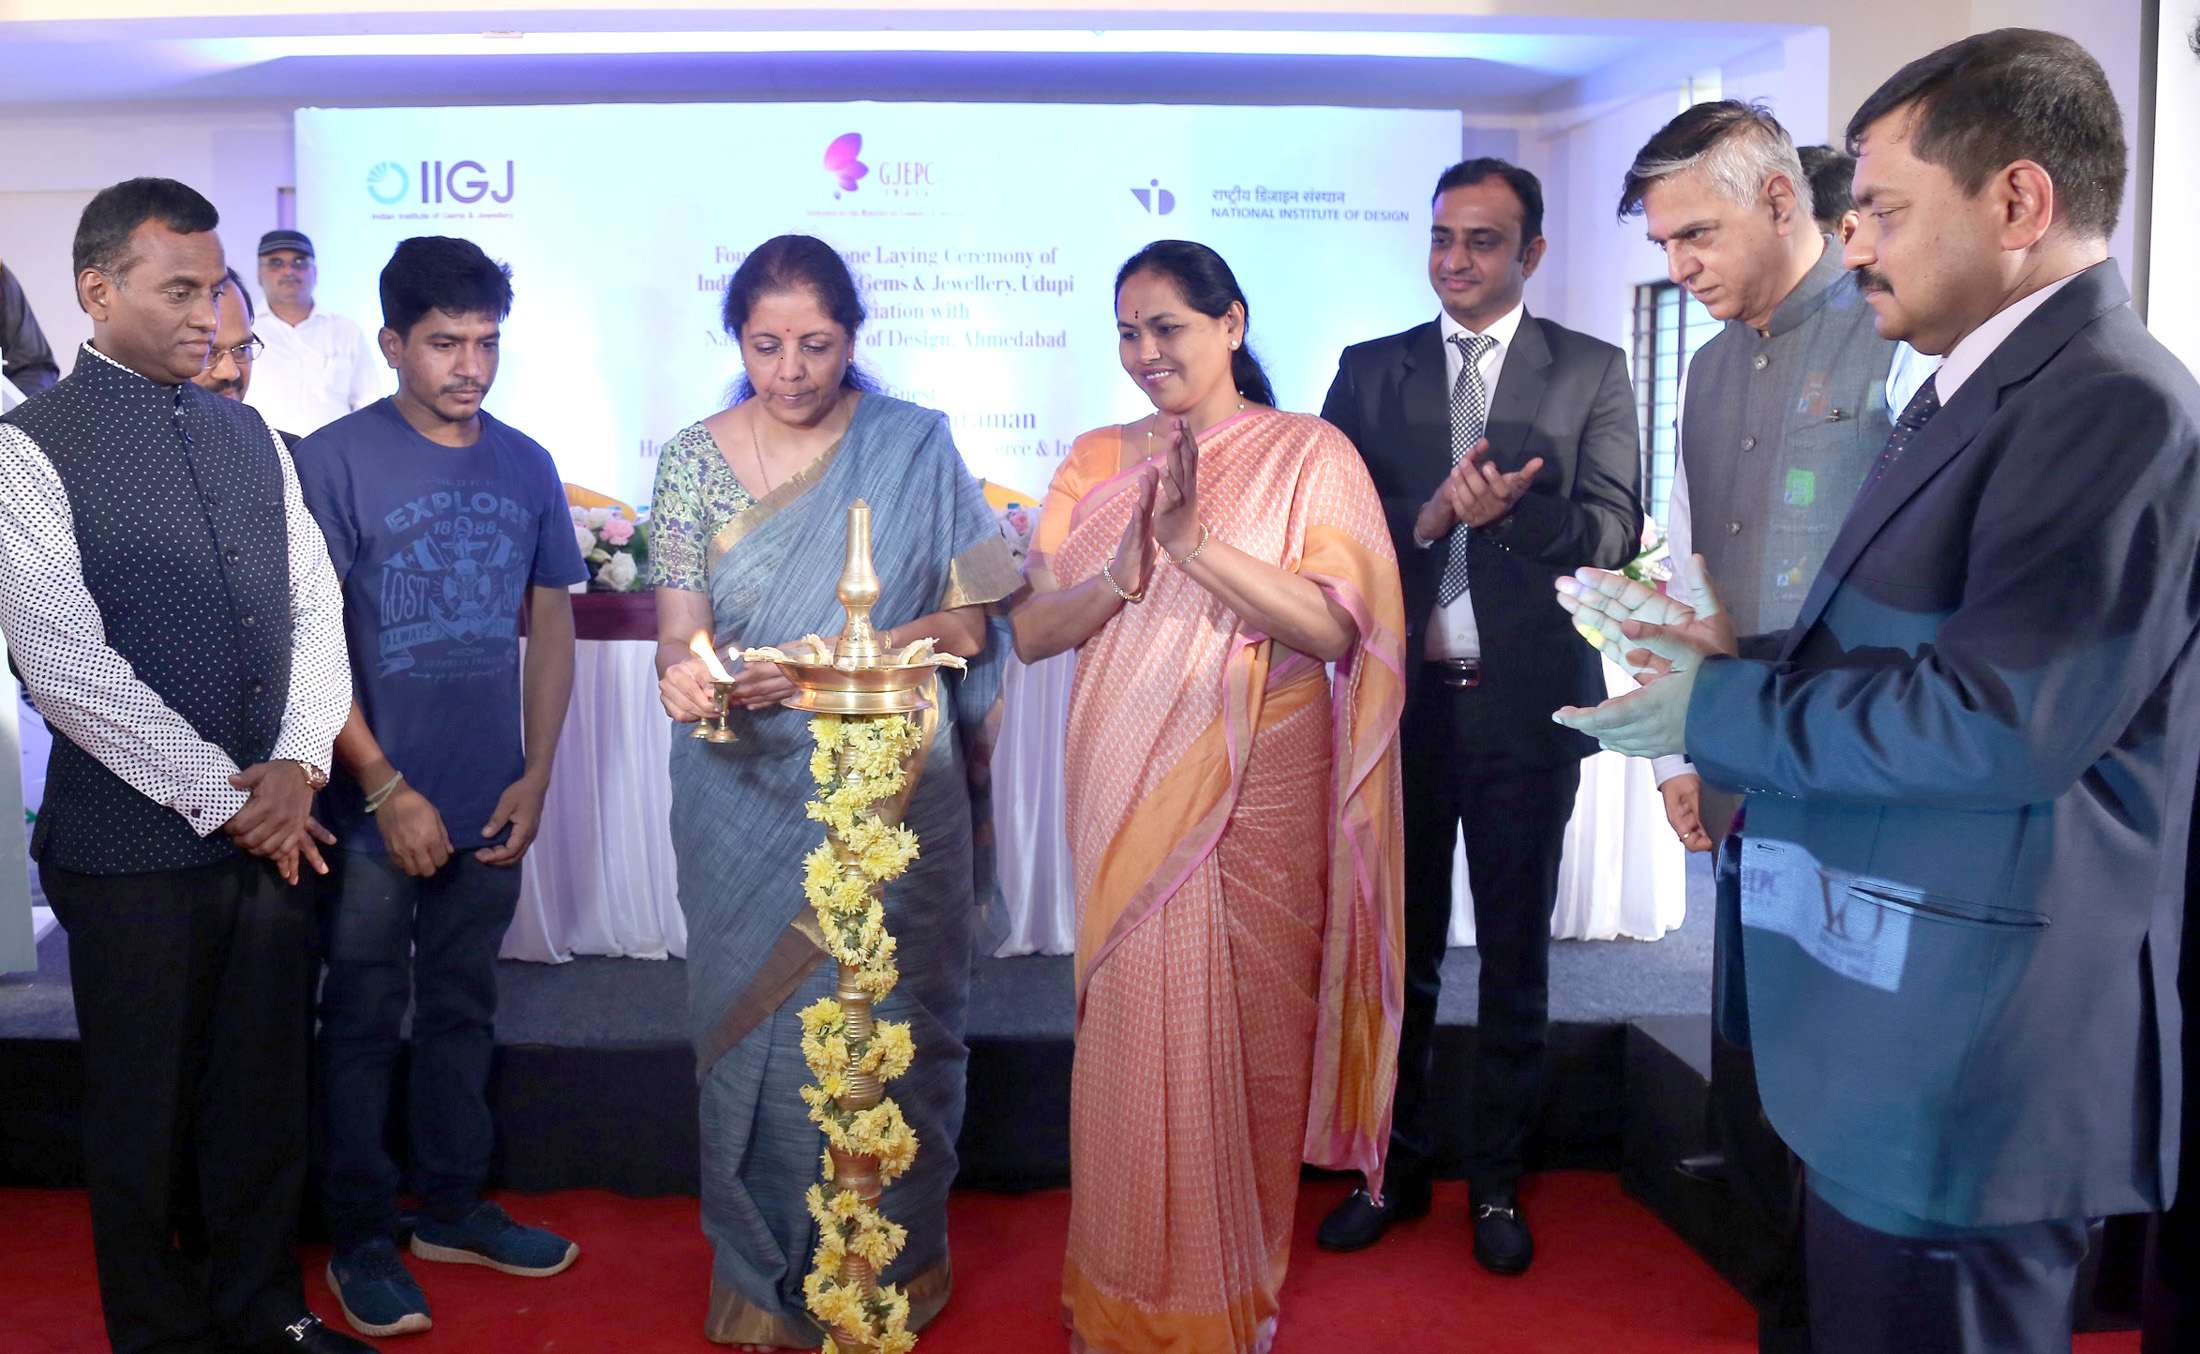 Foundation stone laying for the Indian Institute of Gem and Jewellery